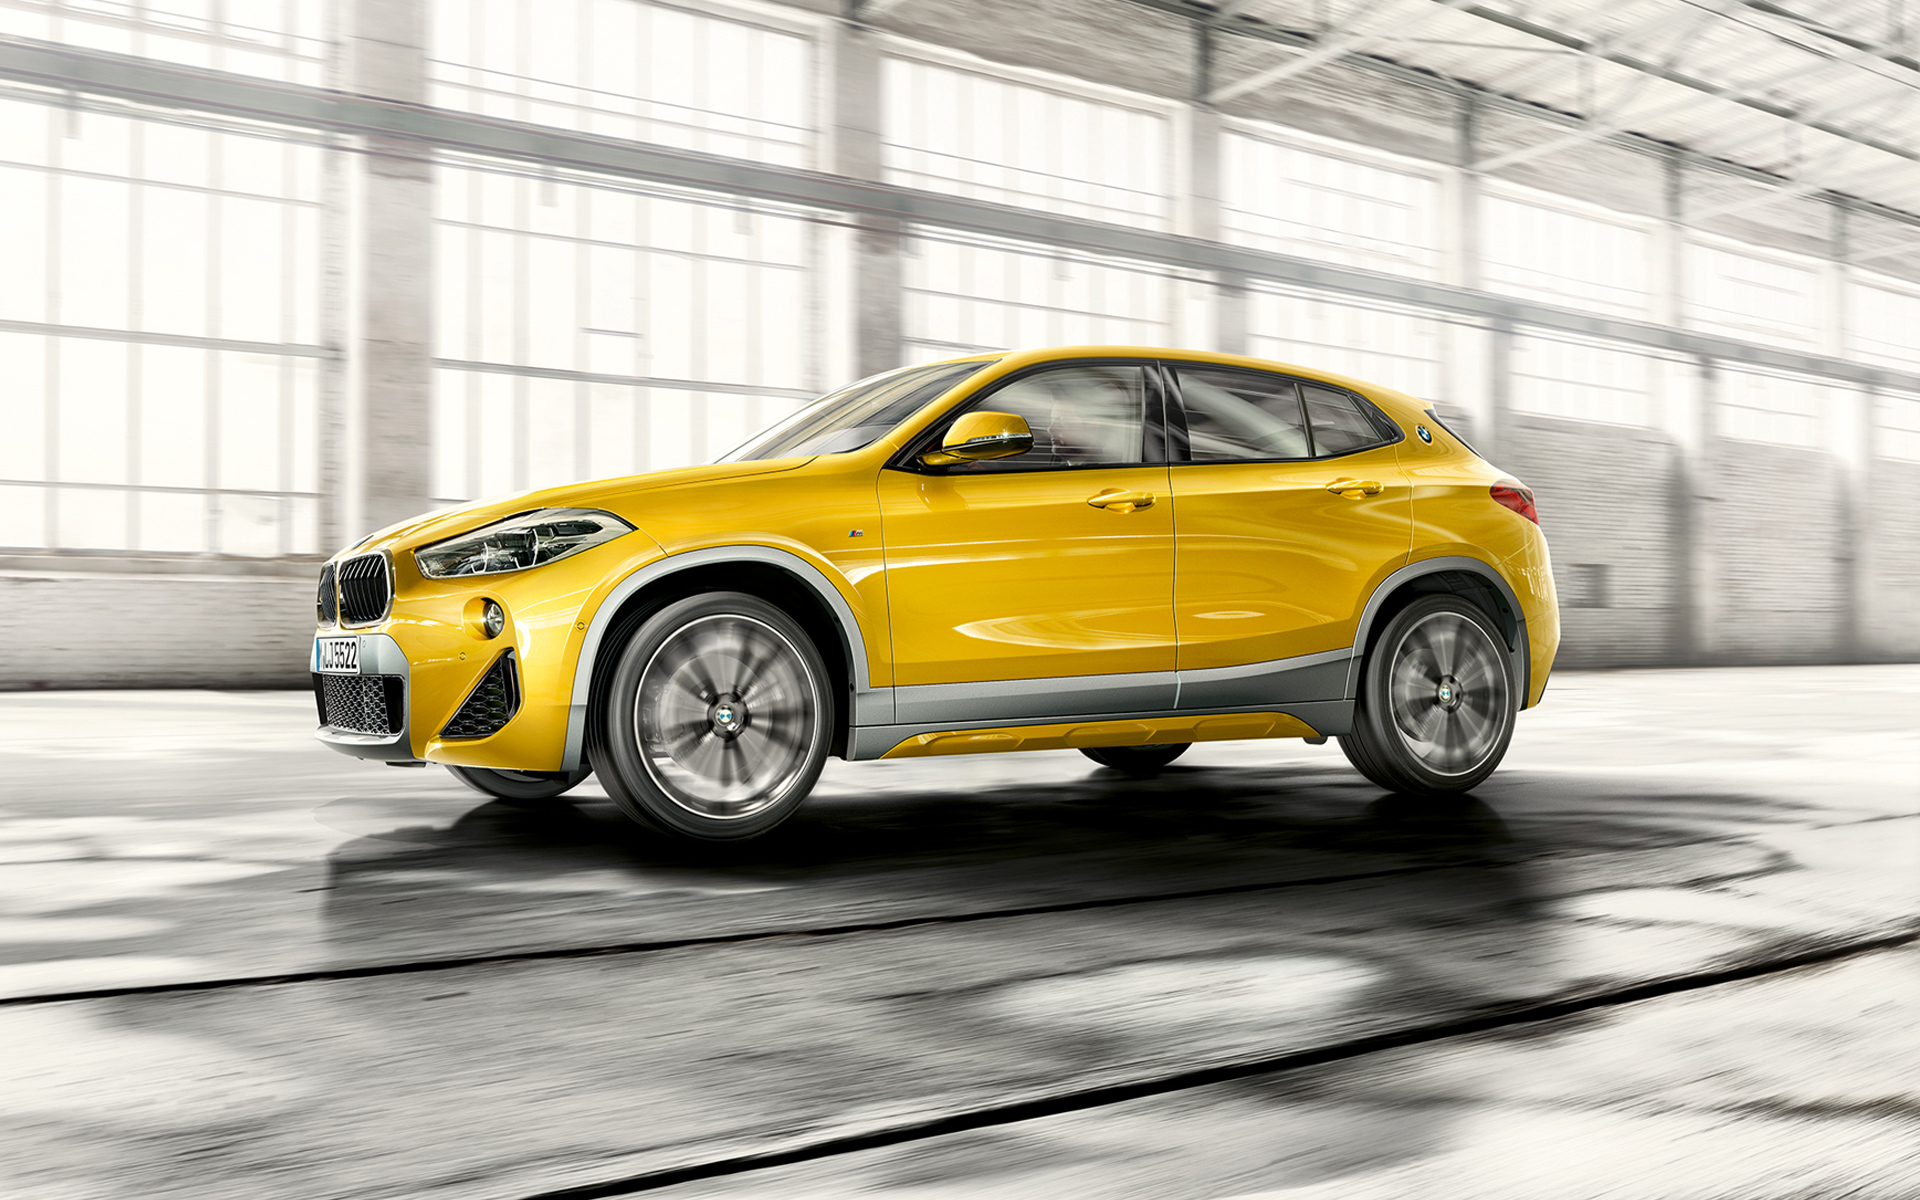 Bmw X2 Price From 39 200 Euro For Sdrive20i Diesel From 43 800 Euro